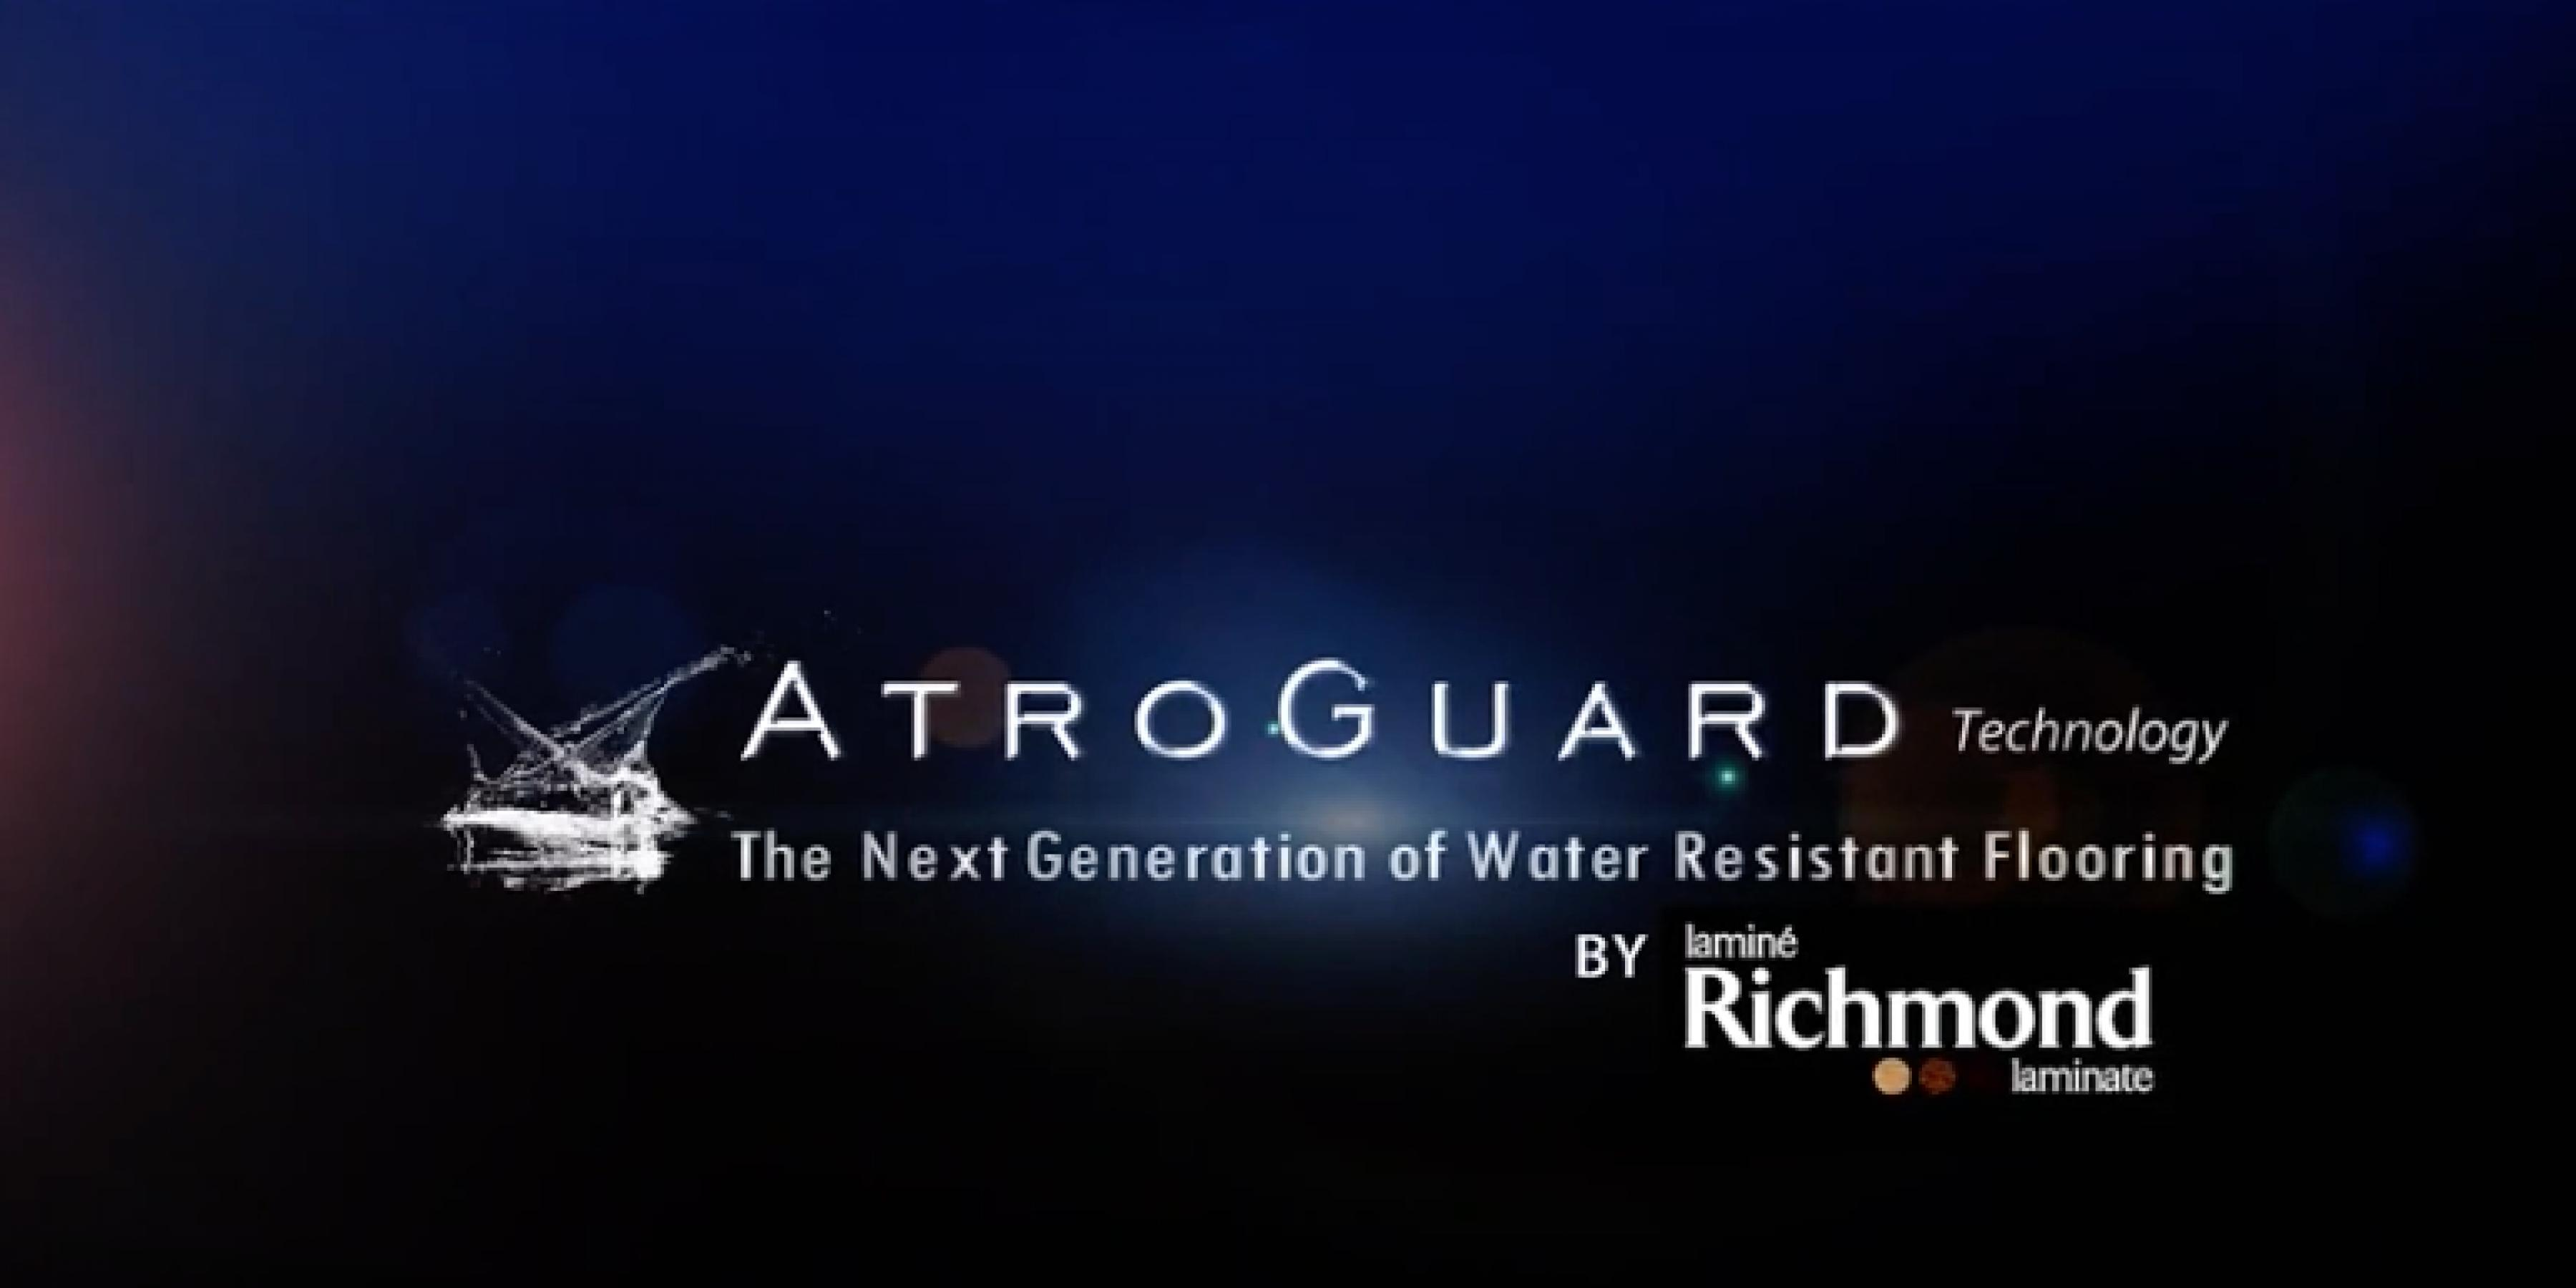 Richmond Laminate Presents: Atroguard